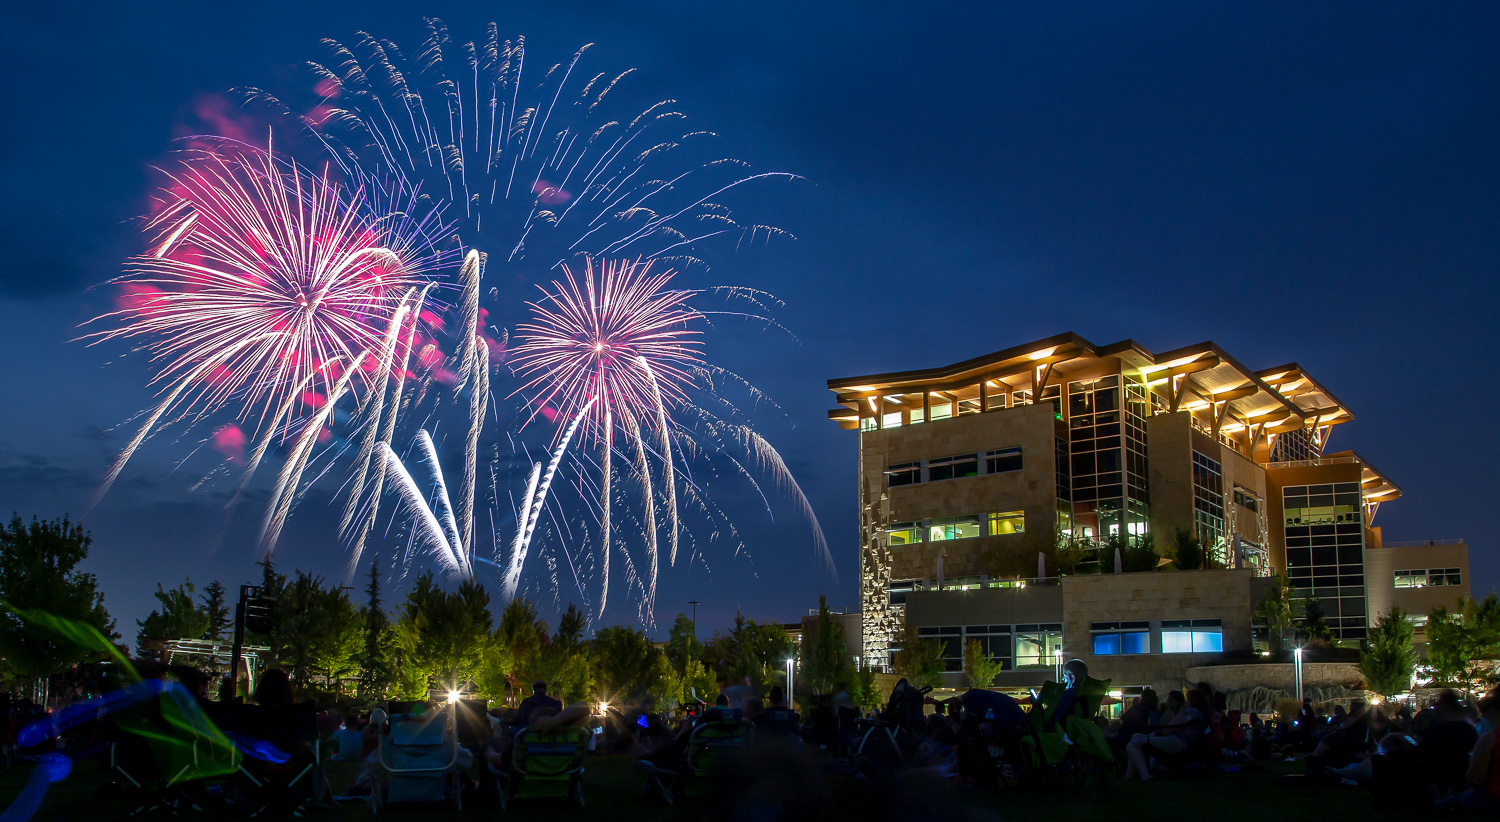 Image: You can pretty much count on a crowd at a fireworks show. Get there early to stake out your s...